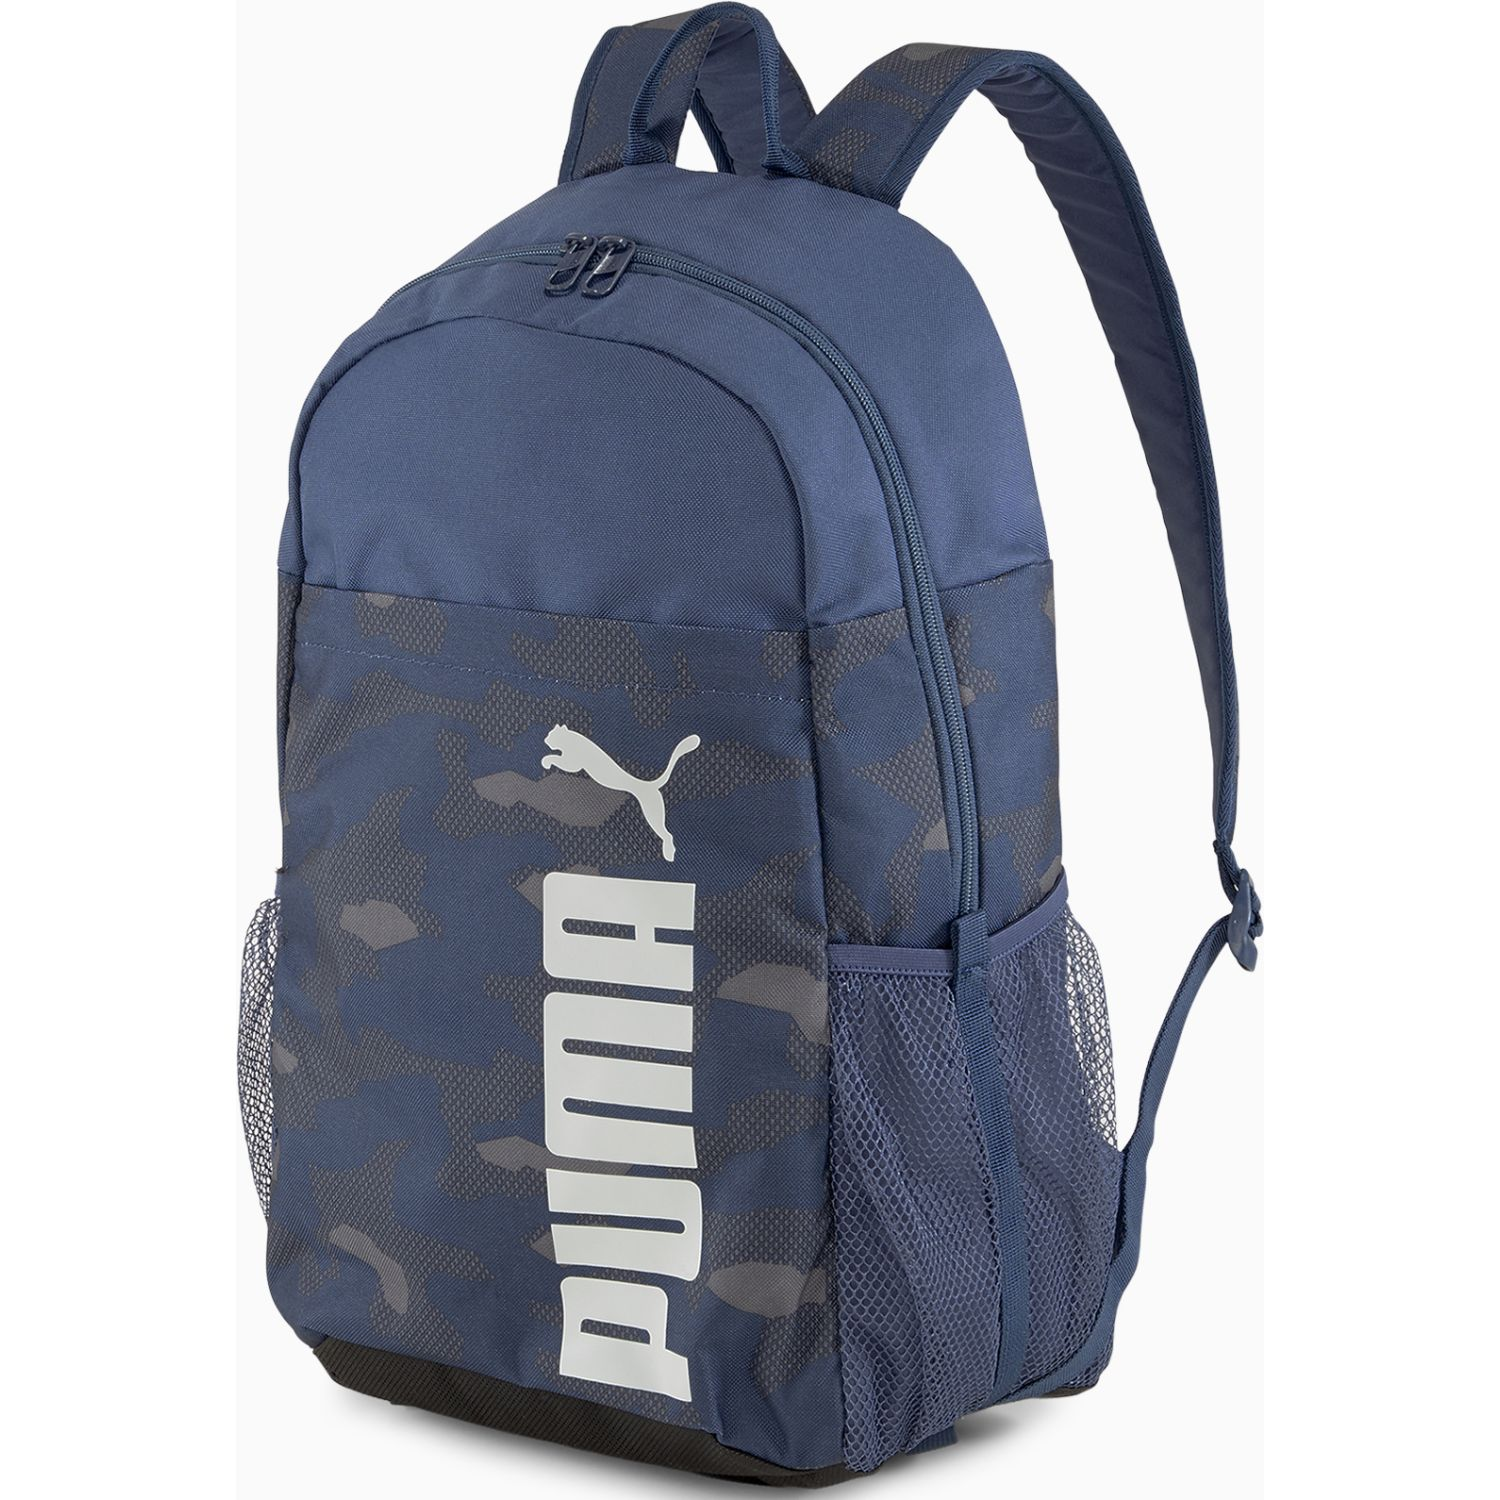 Puma puma style backpack Navy Mochilas Multipropósitos